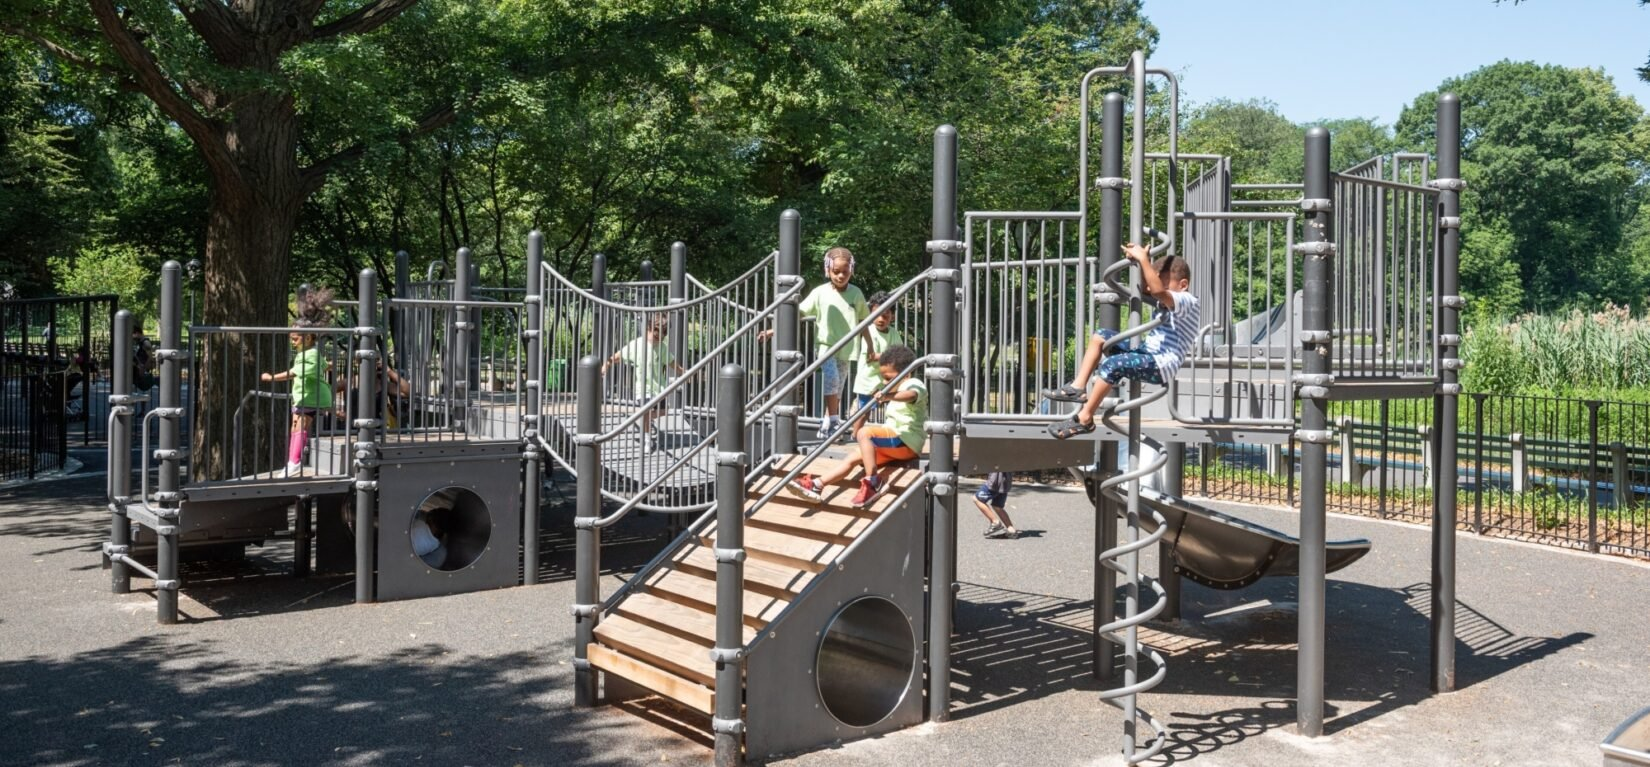 Small children enjoy the play structures in the playground